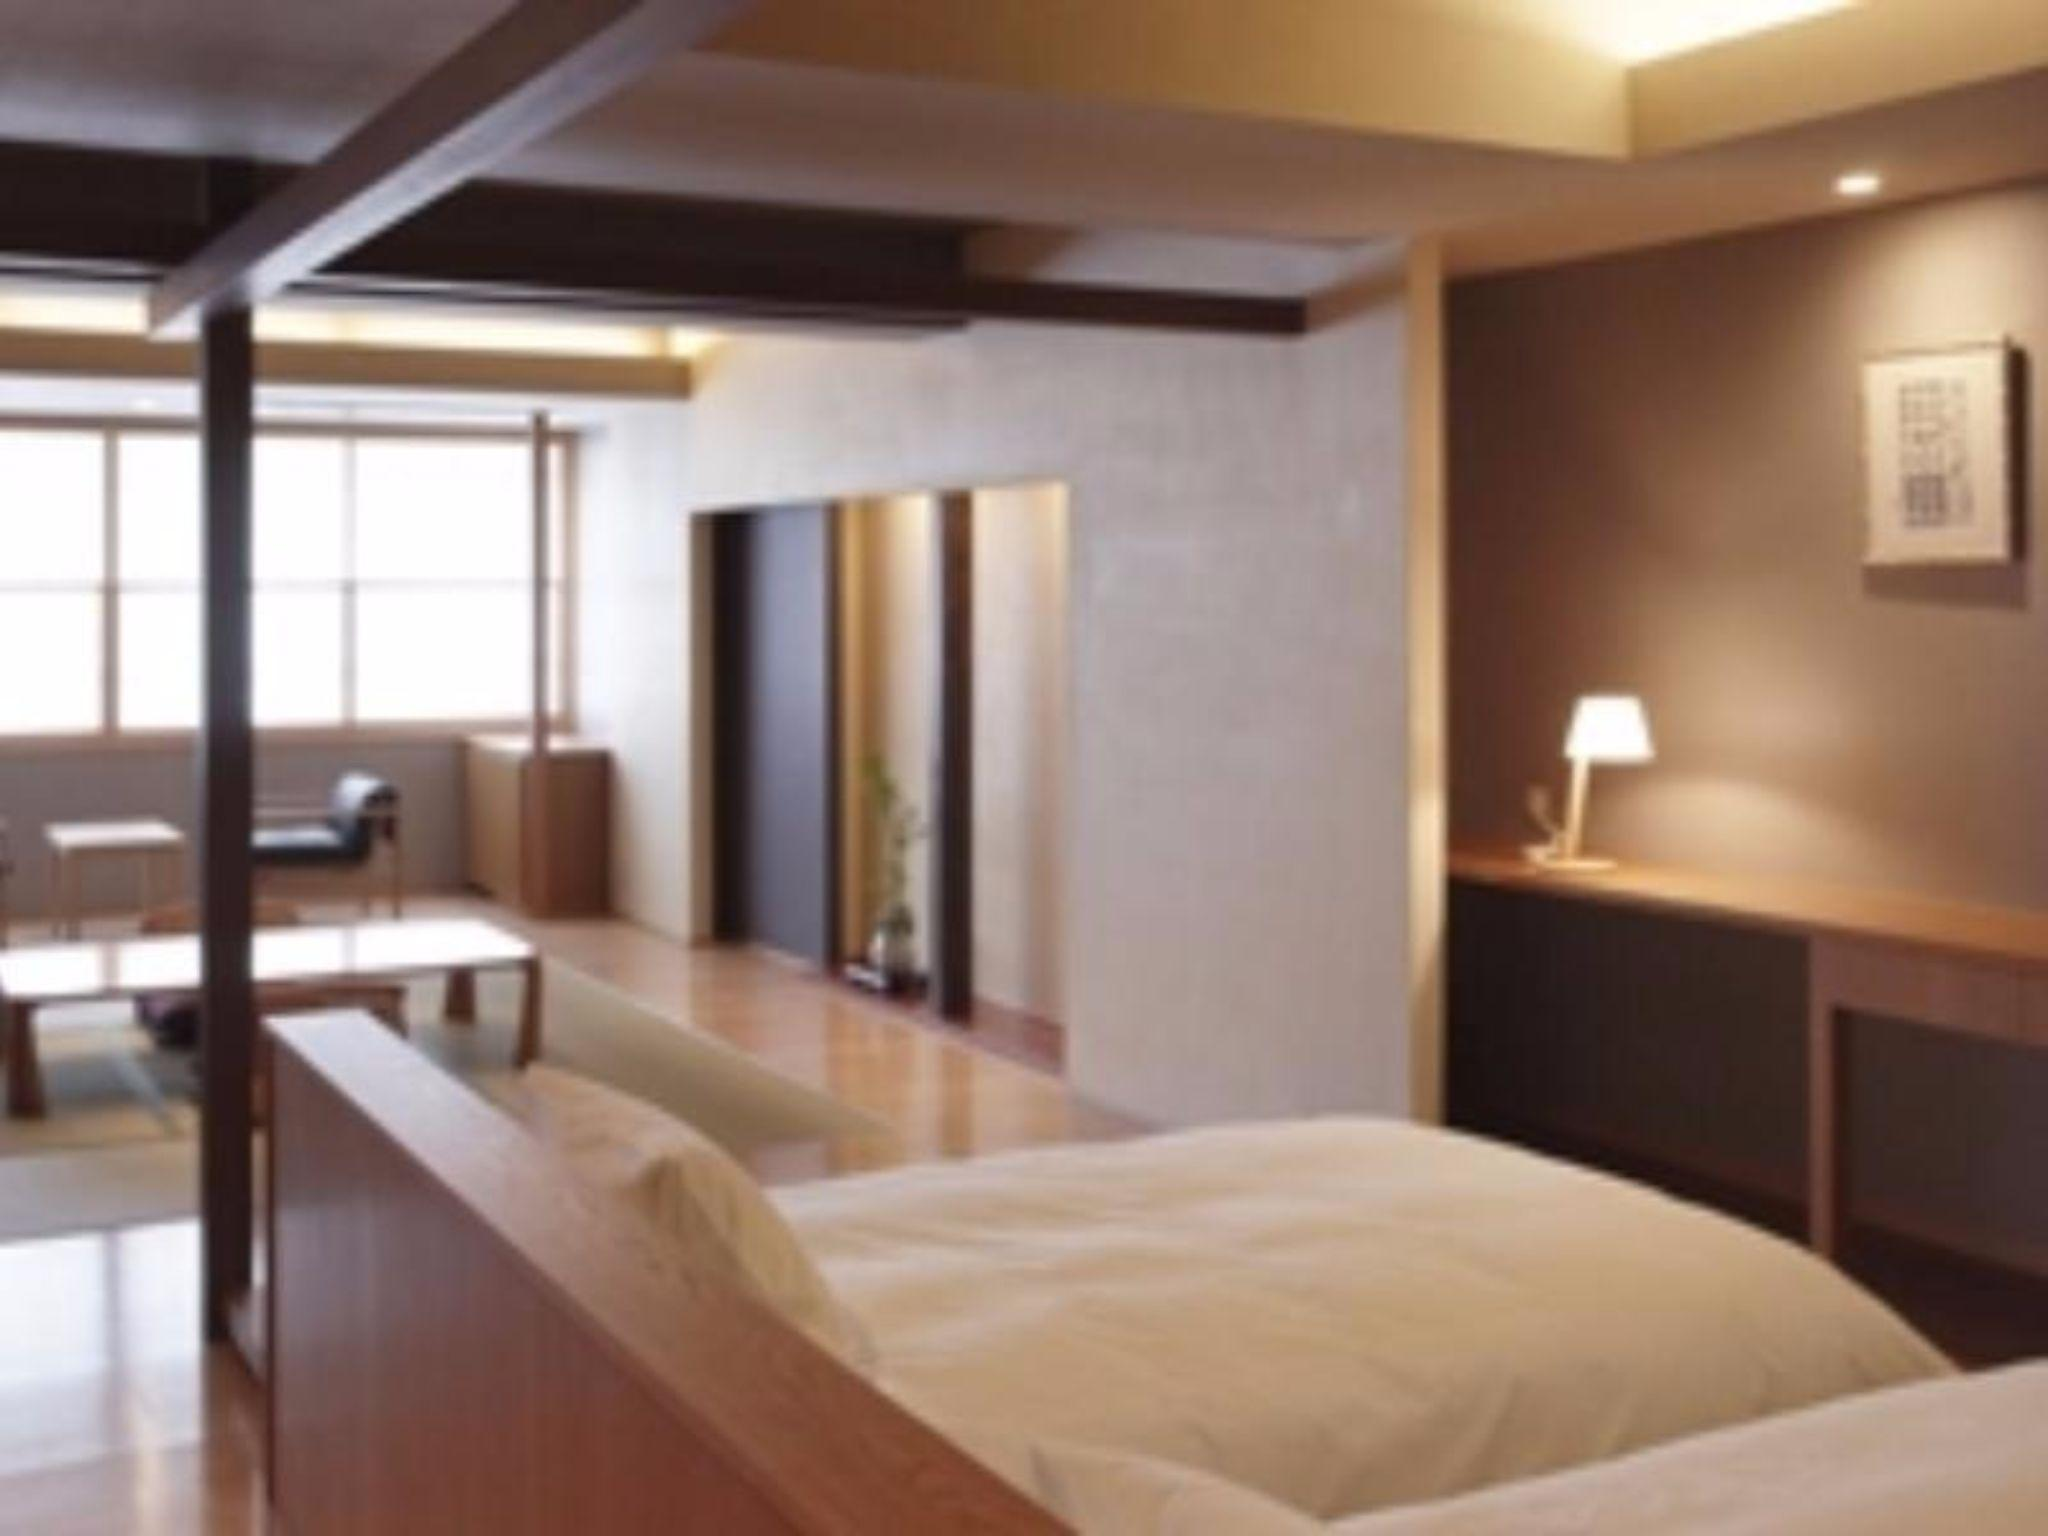 Sea View Japanese Western Style Room for 4 People with Twin Bed - Non-Smoking